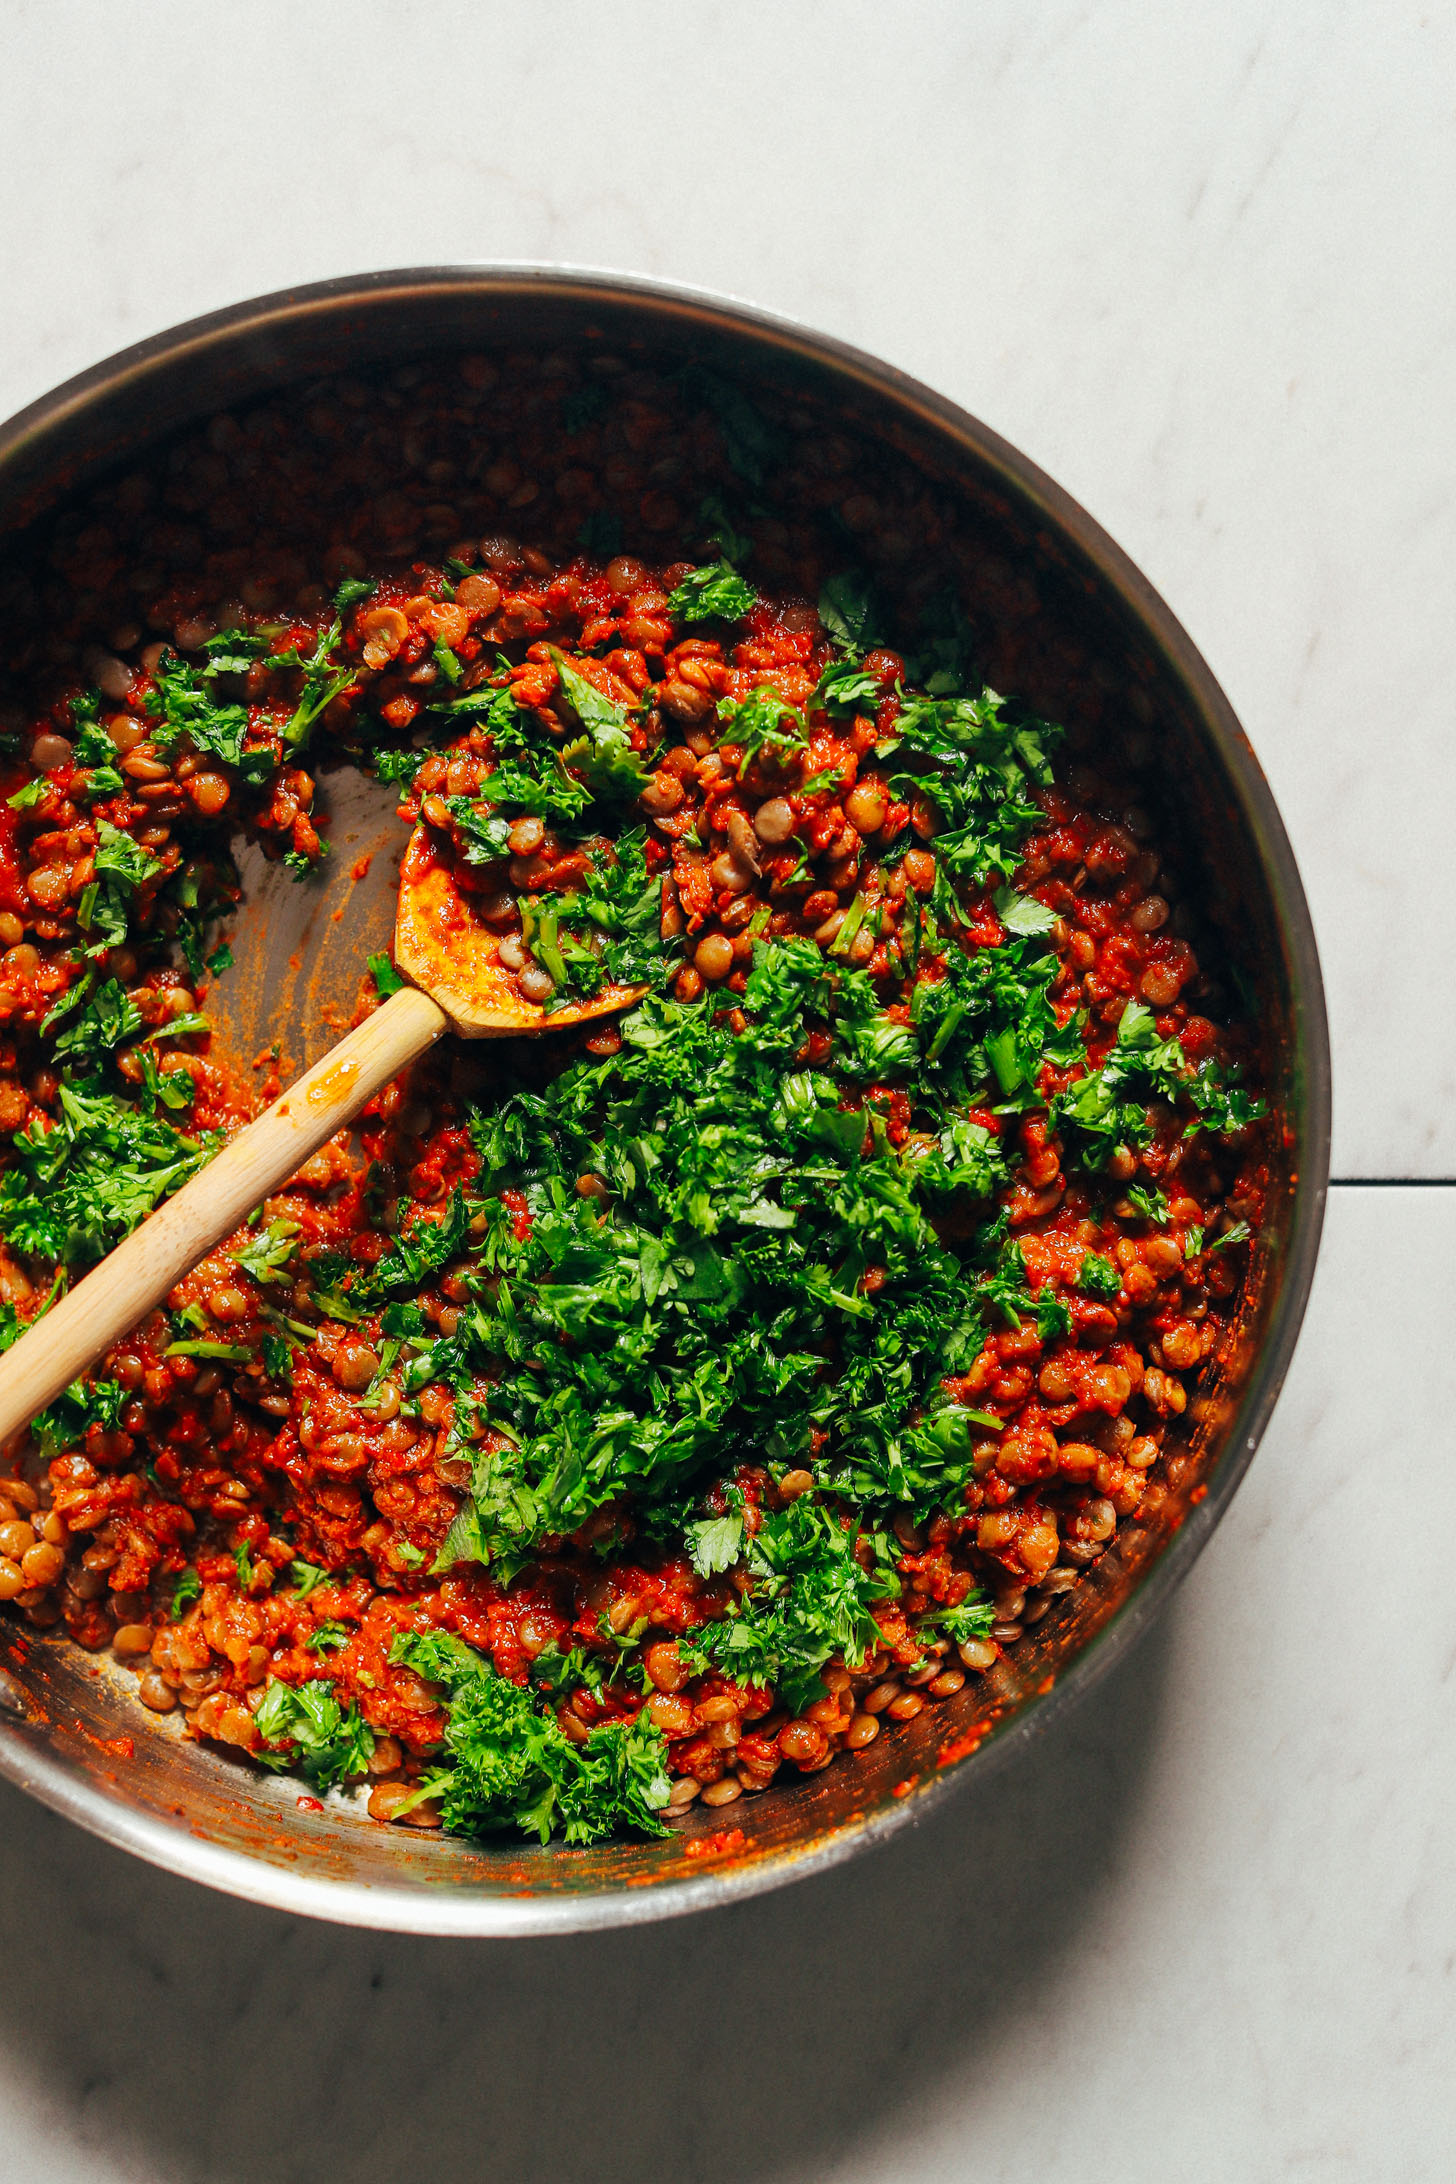 Large saute pan with Moroccan-Spiced Lentils garnished with fresh parsley and cilantro